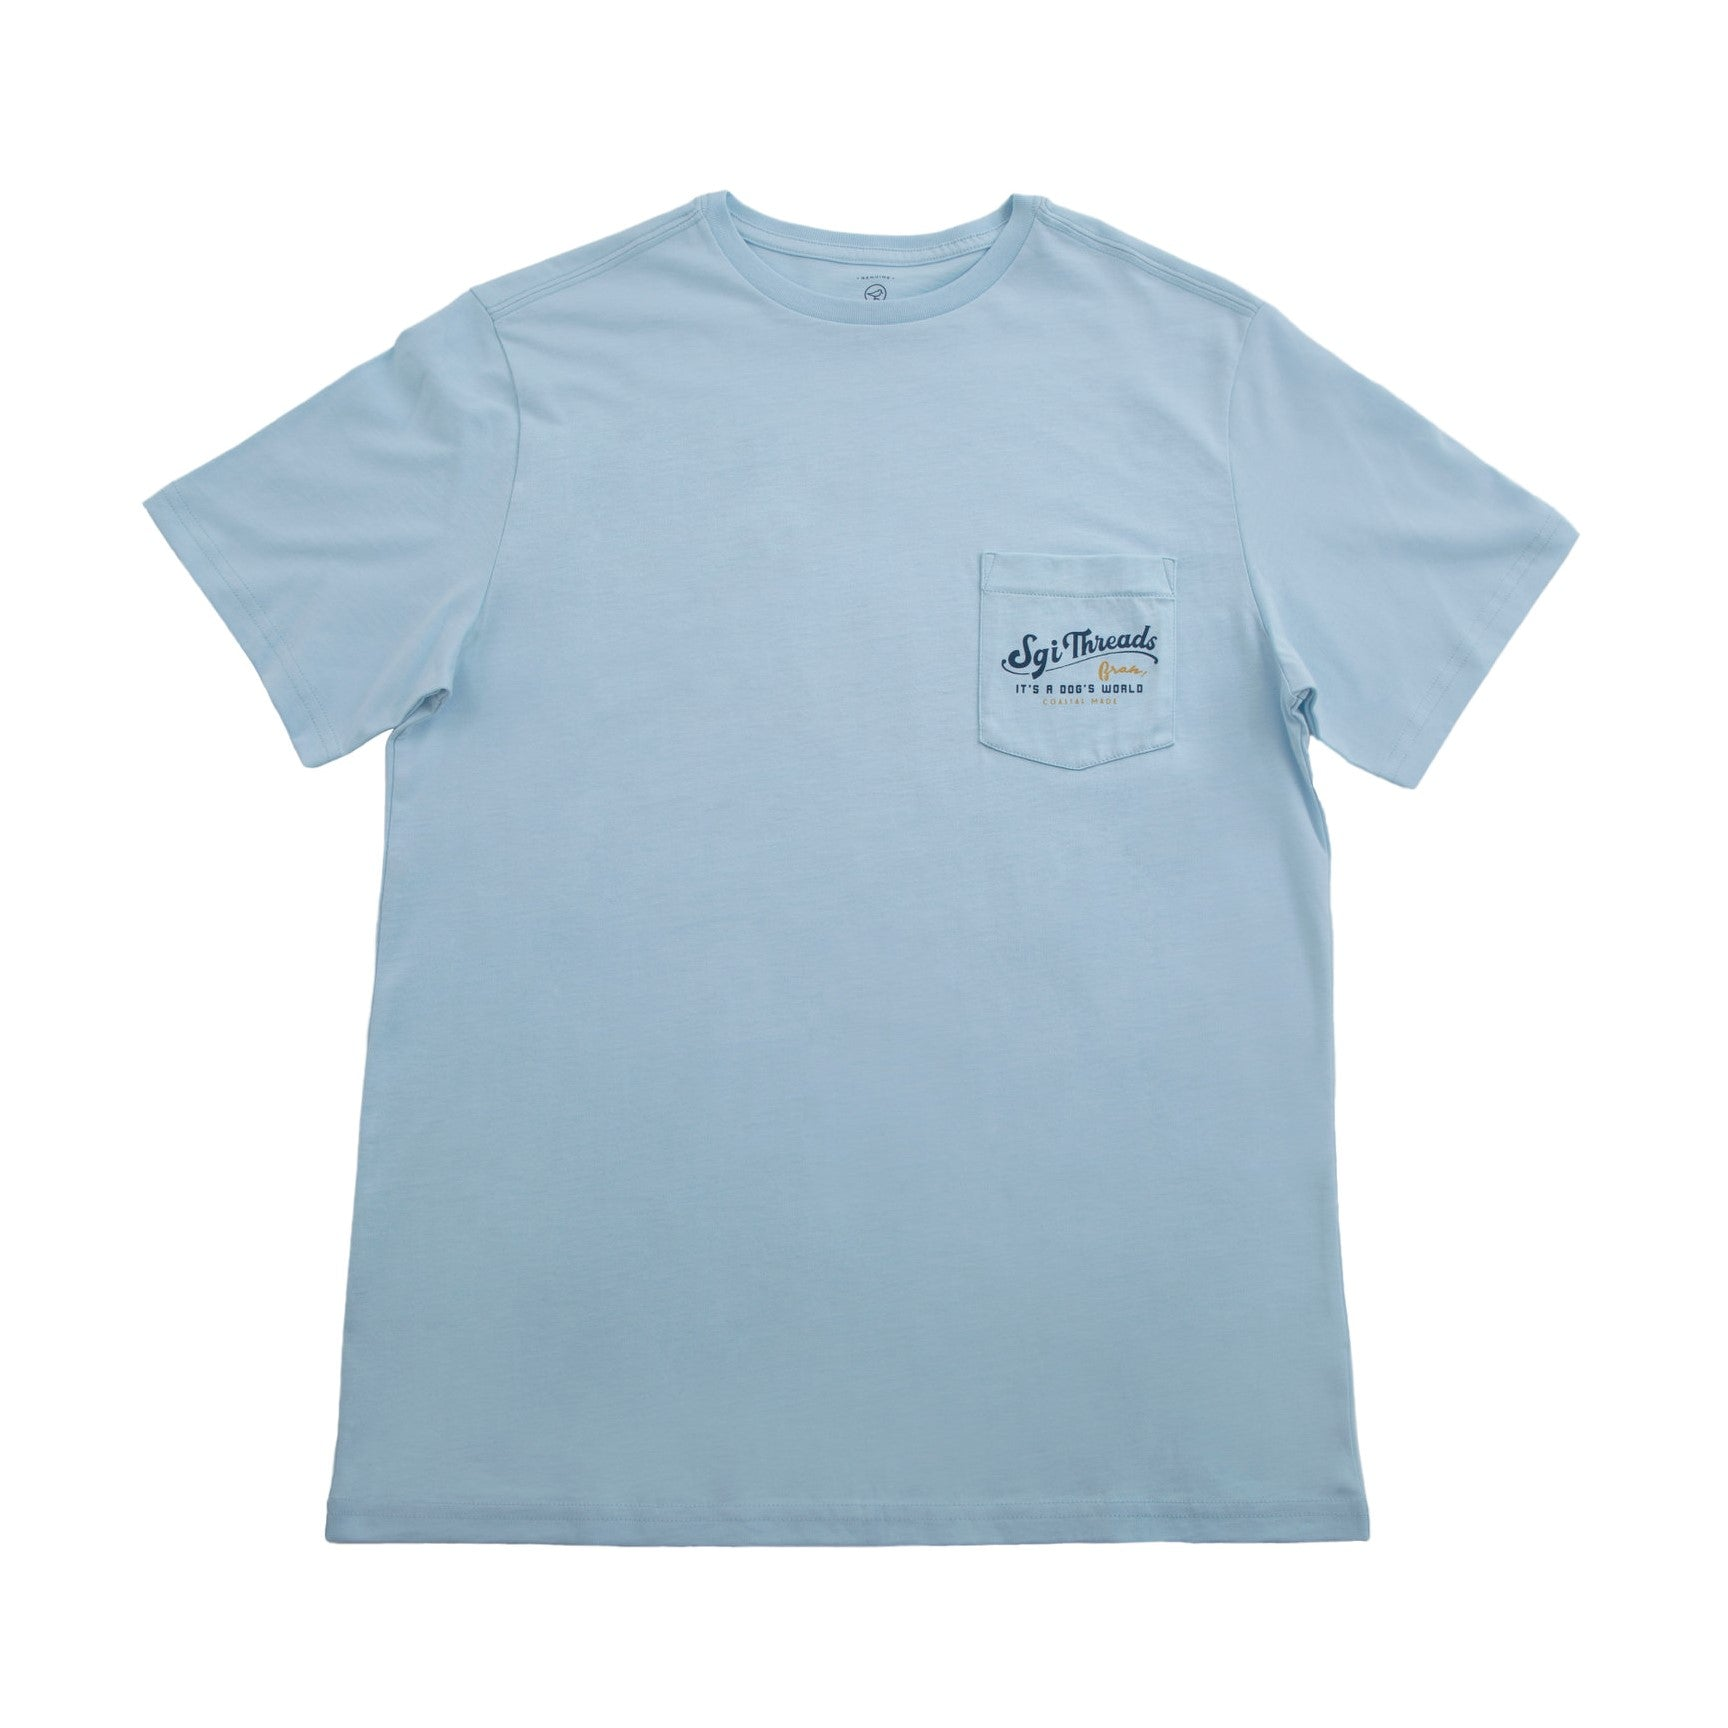 DOGS WORLD SHORT-SLEEVE TEE LIGHT BLUE